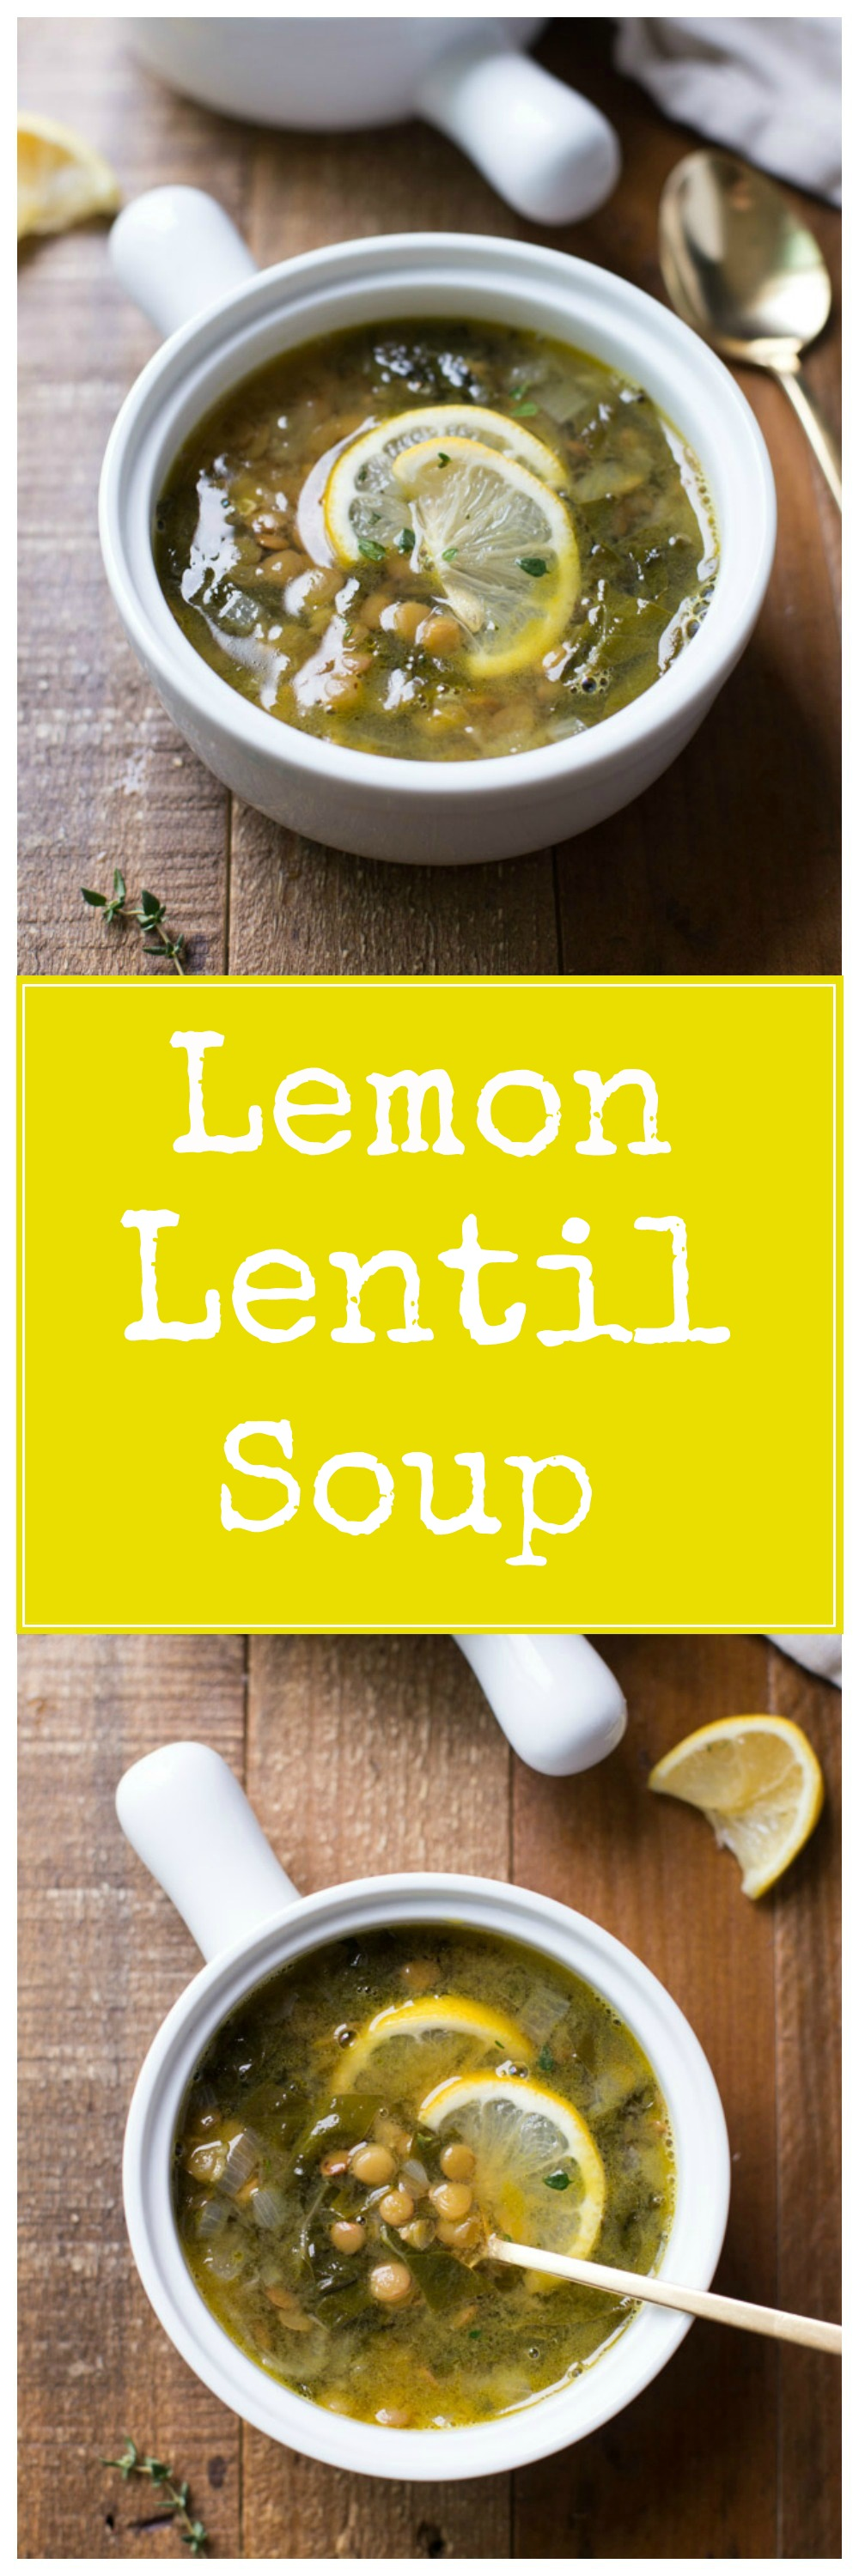 Lemon Lentil Soup 11